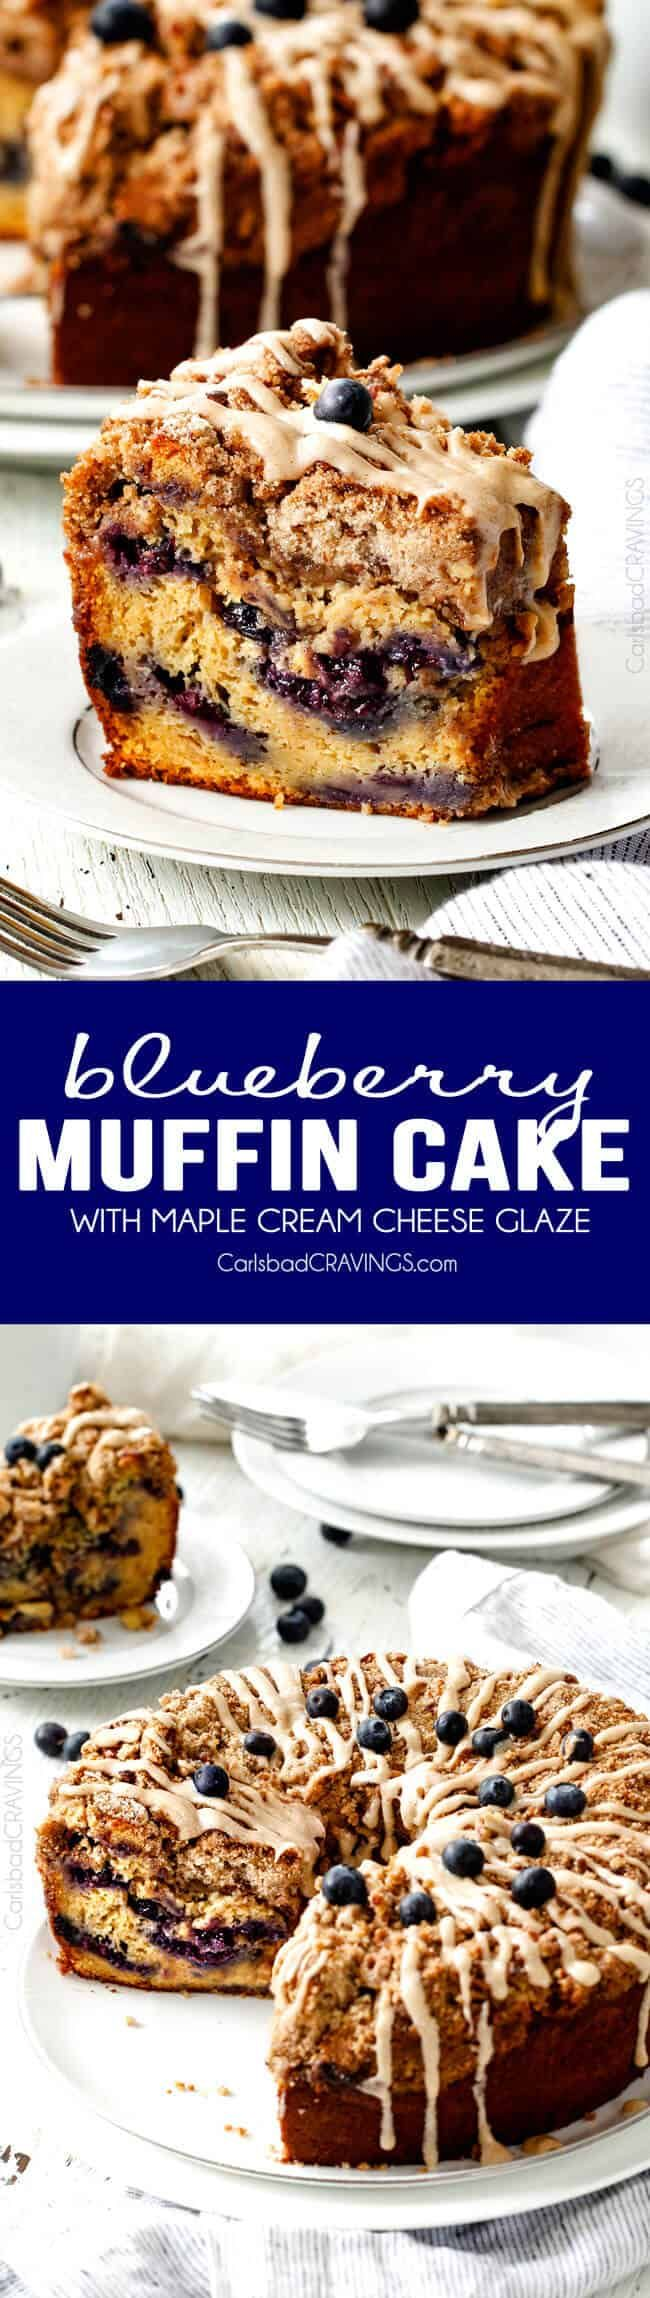 I've died and gone to heaven! This EASY Blueberry Muffin Cake is like a giant blueberry muffin and the Maple Cream Cheese Glaze is amazing! Everyone always asks me to make this for brunch! via @carlsbadcraving